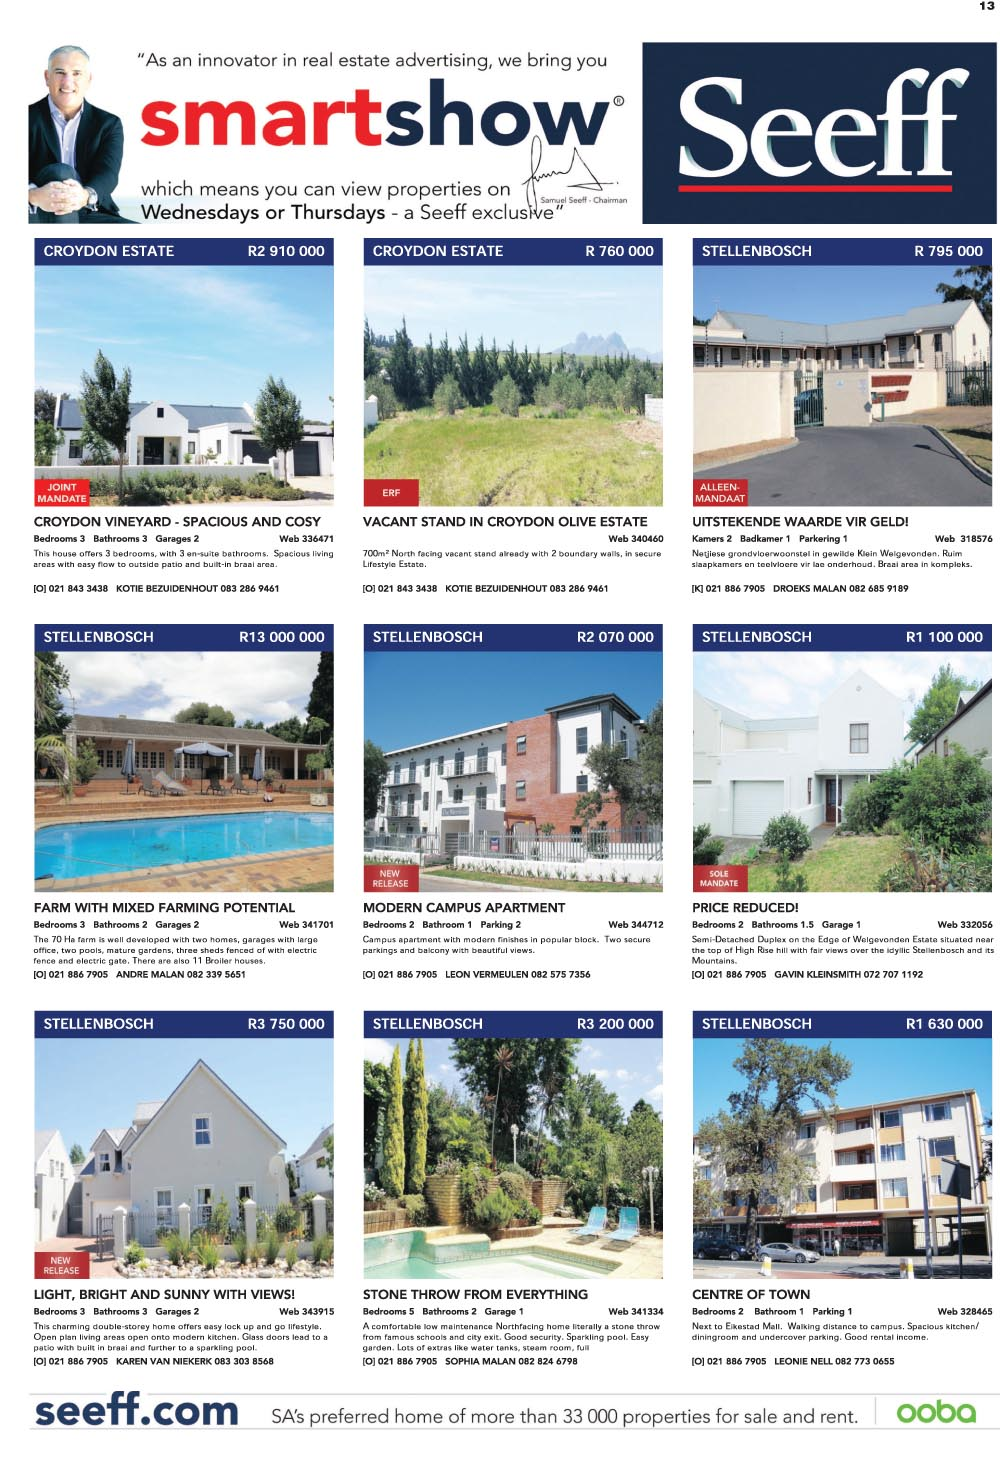 You are browsing images from the article: Property Selection February 18 2015